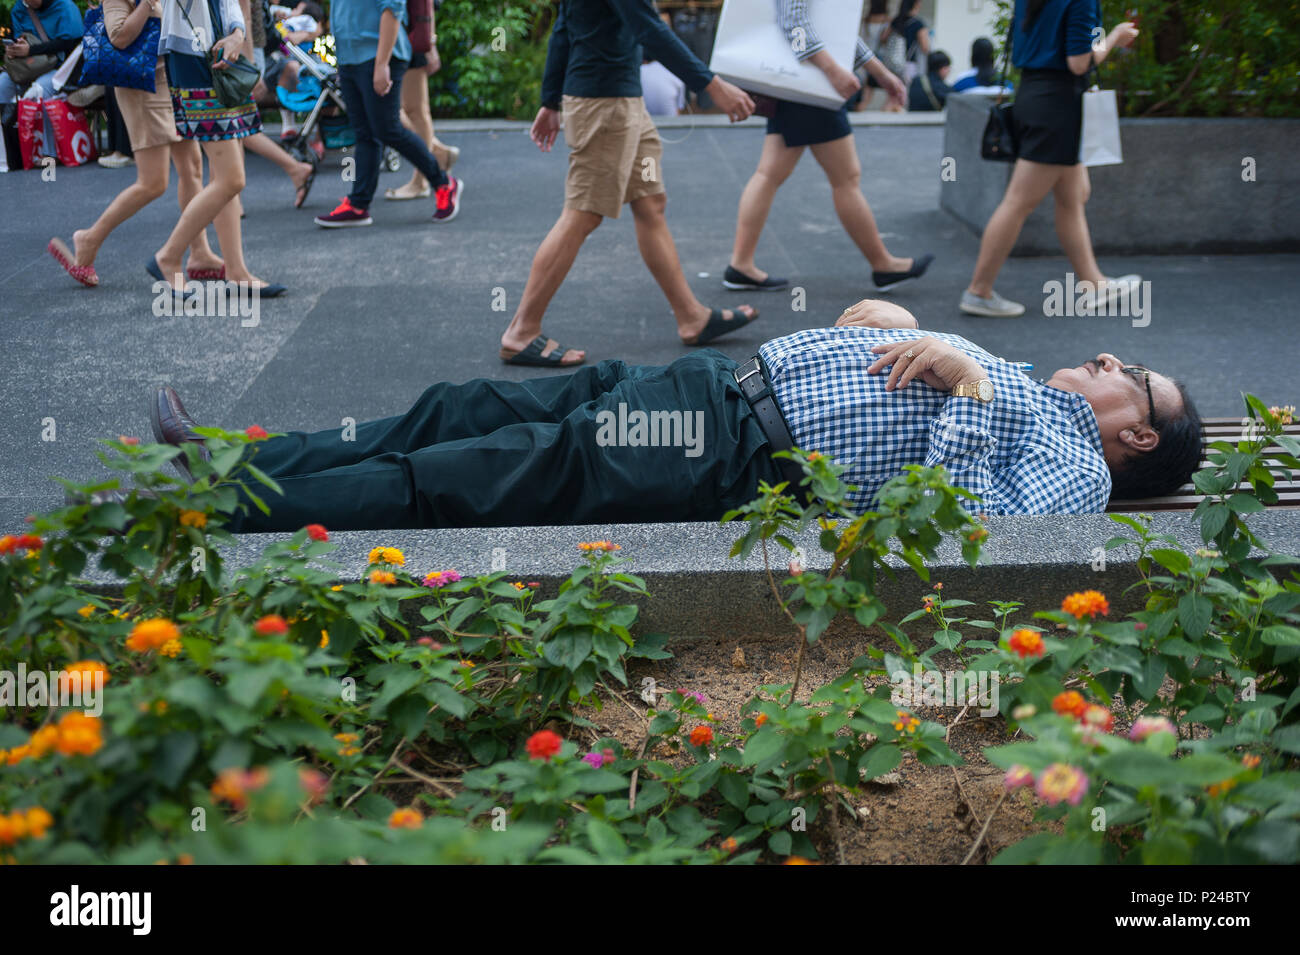 Singapore, Republic of Singapore, a man slept on a Parbank - Stock Image